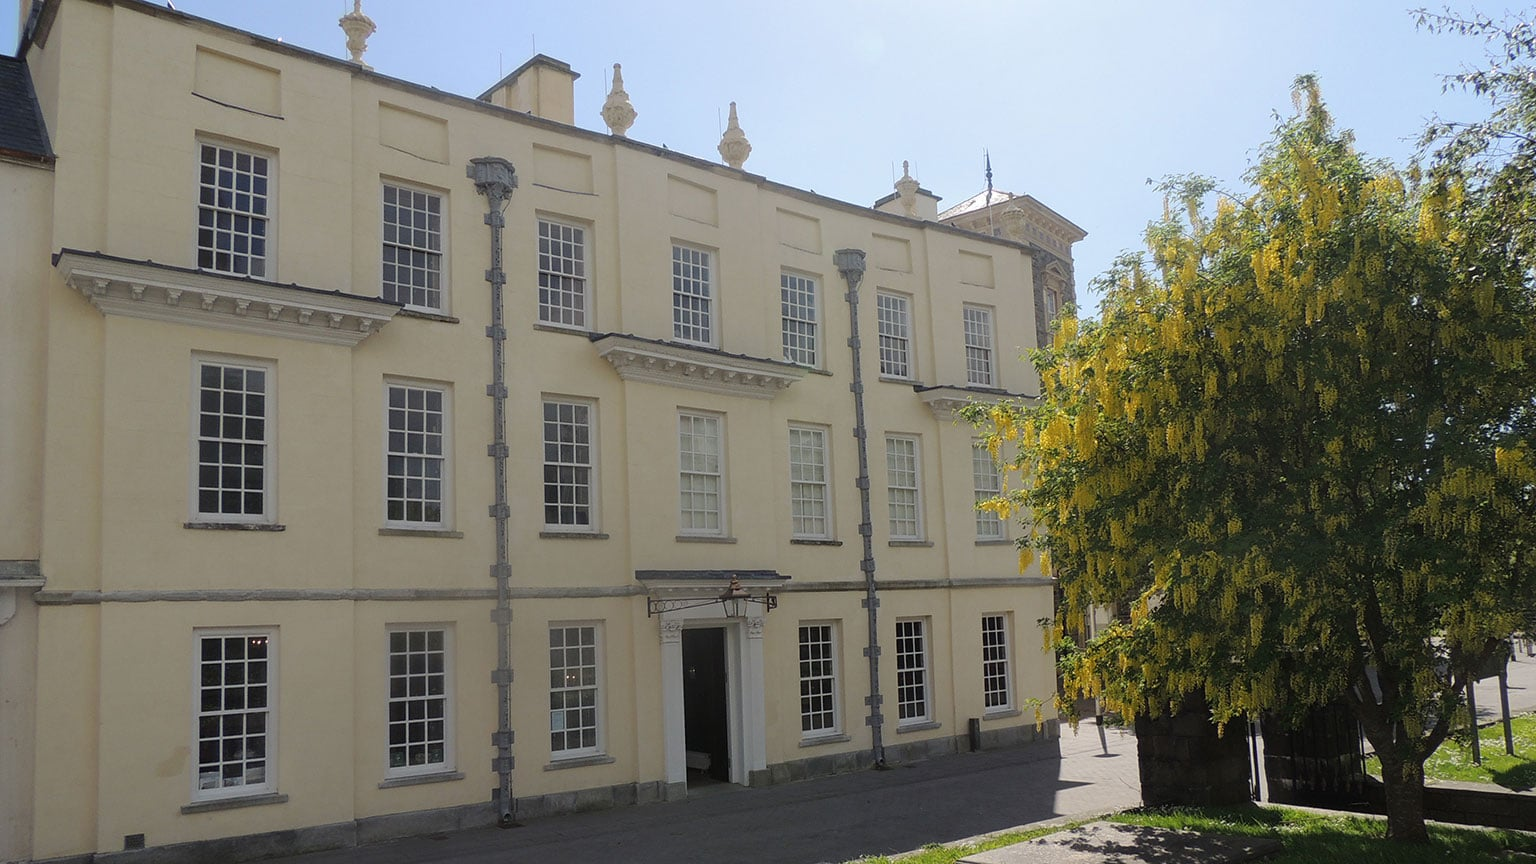 Llanelly House